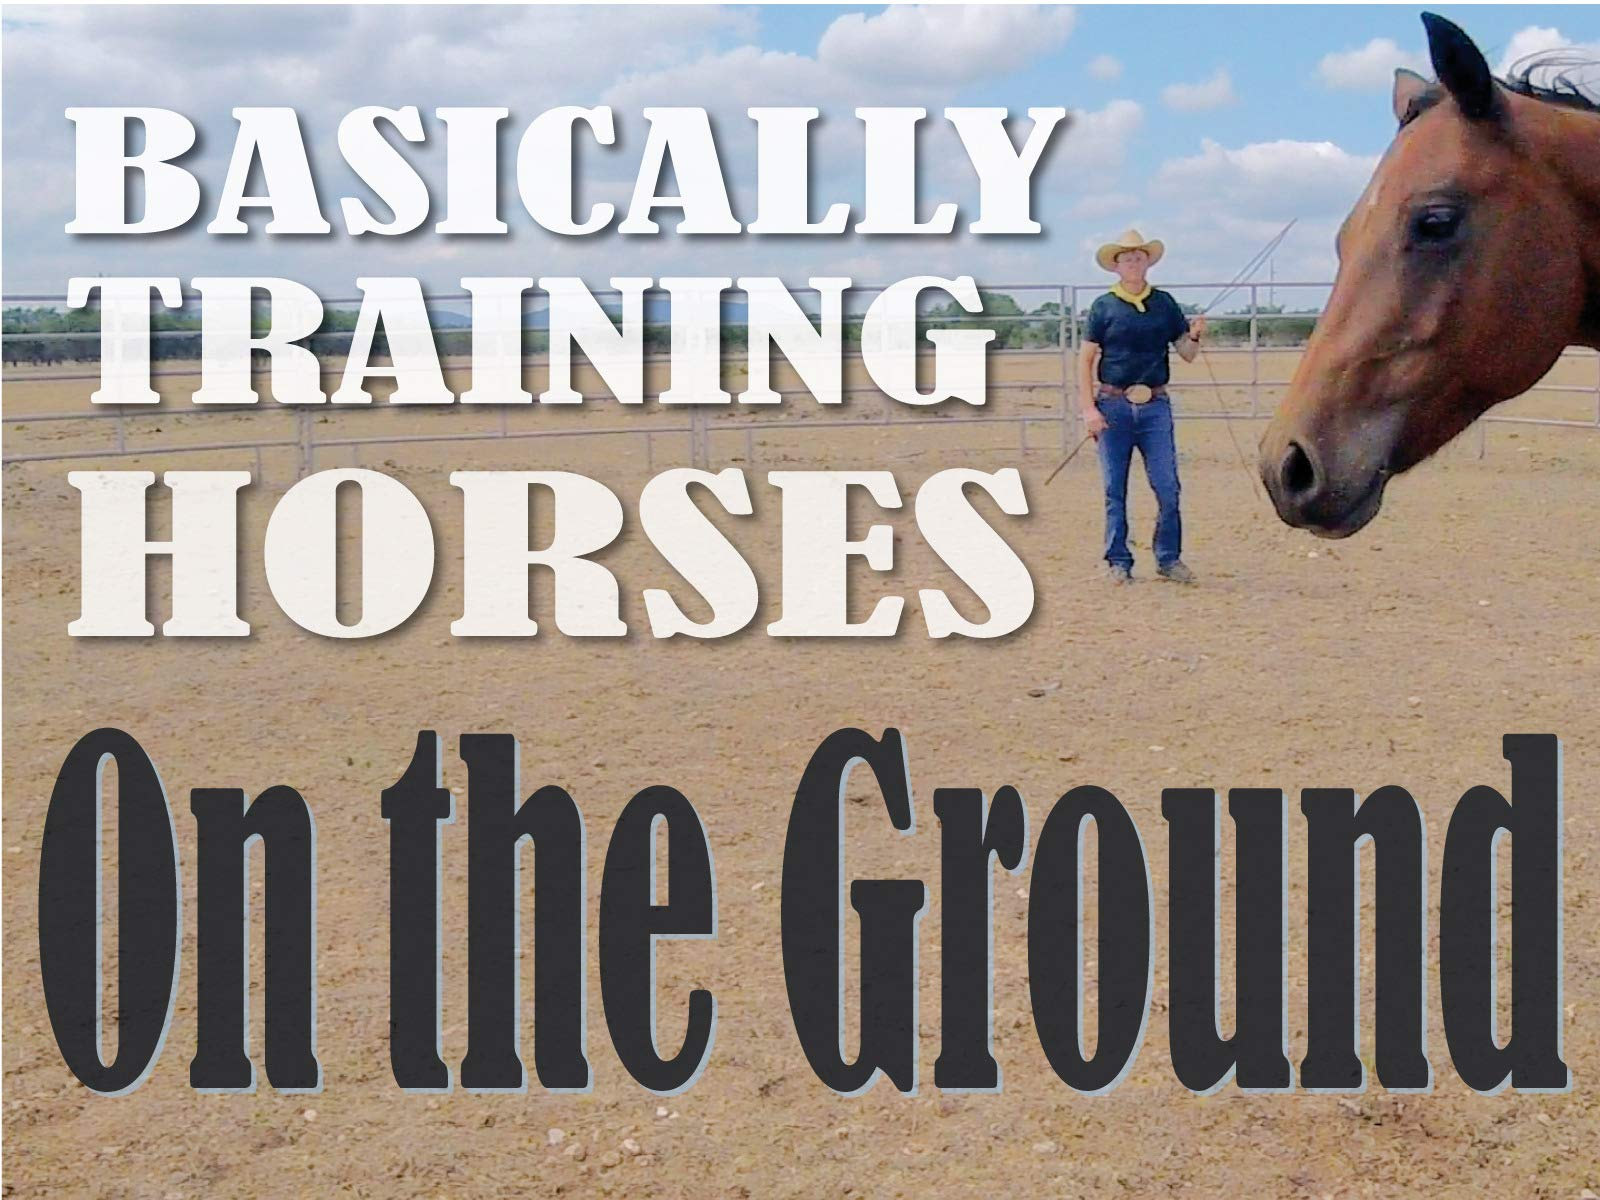 Basically Training Horses - On the Ground - Season 1